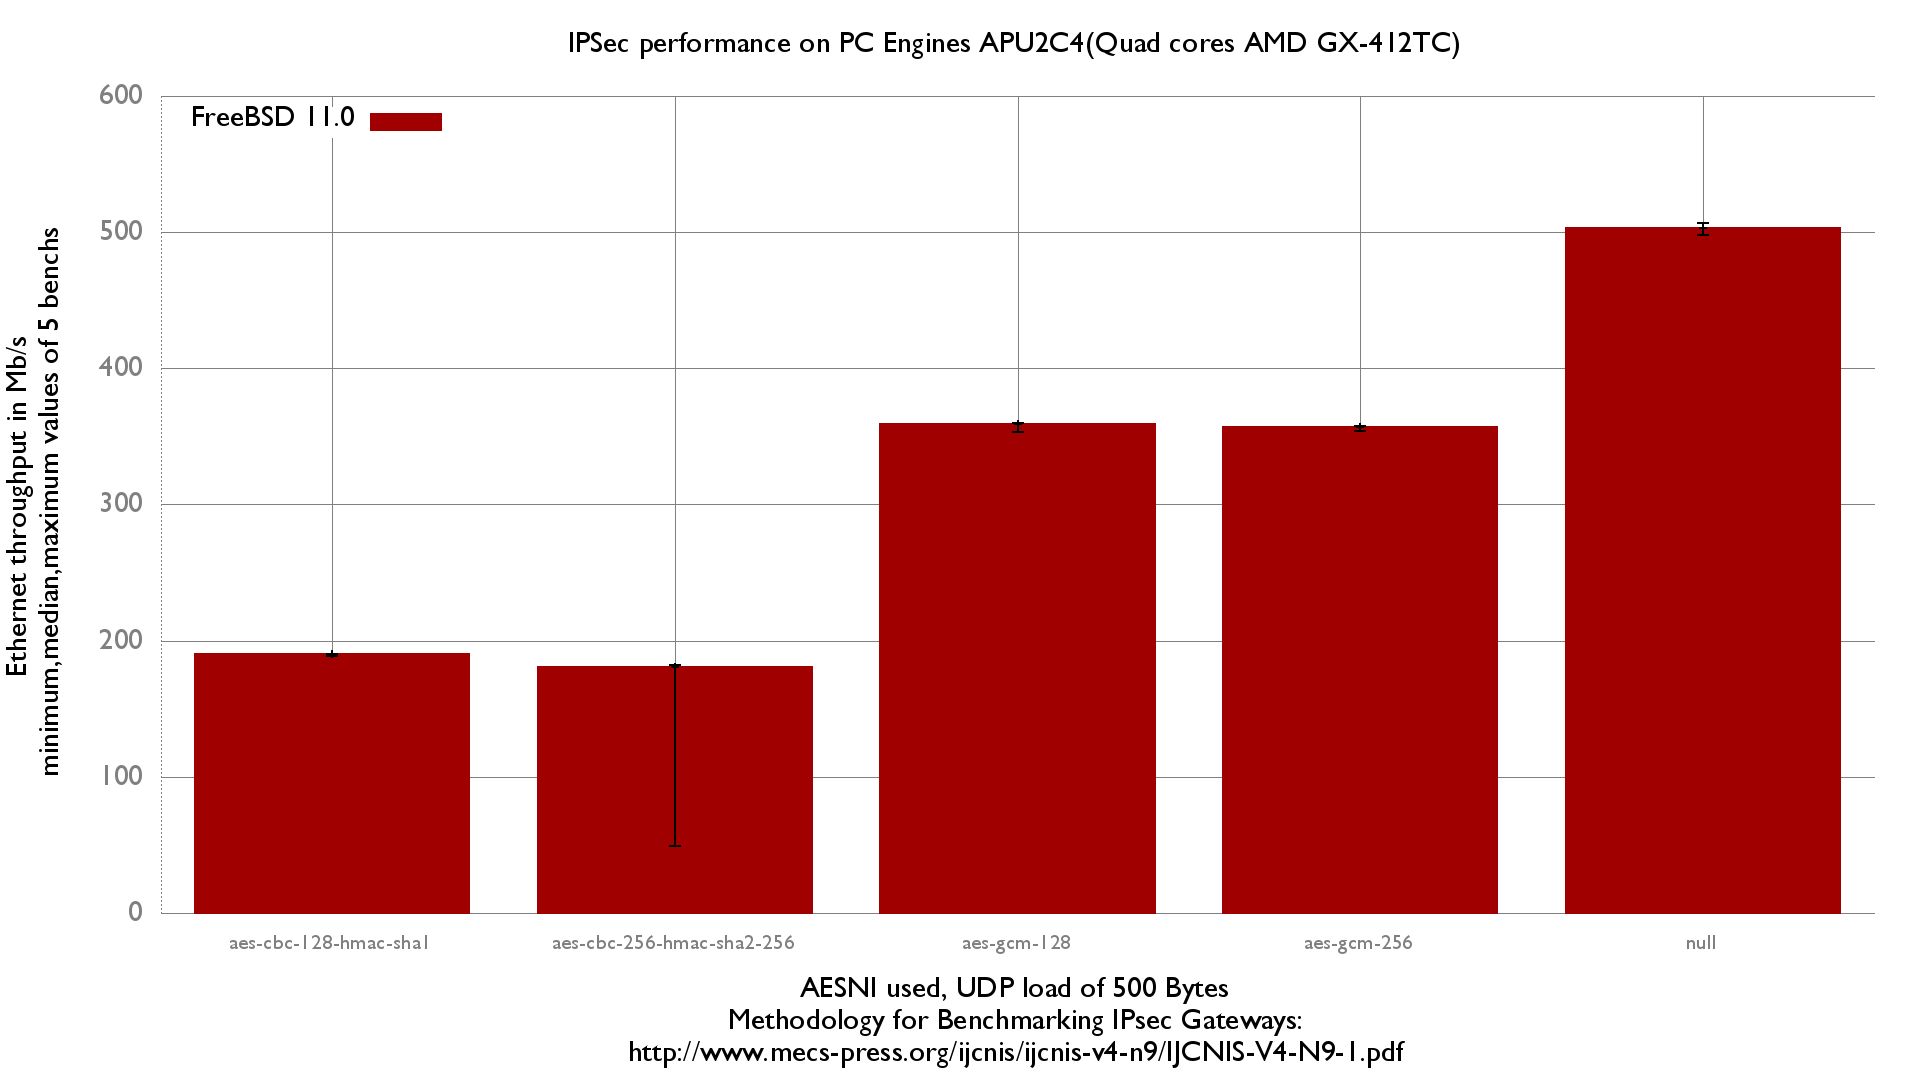 IPSec  throughput with a PC Engines APU2C2 running FreeBSD 11.0